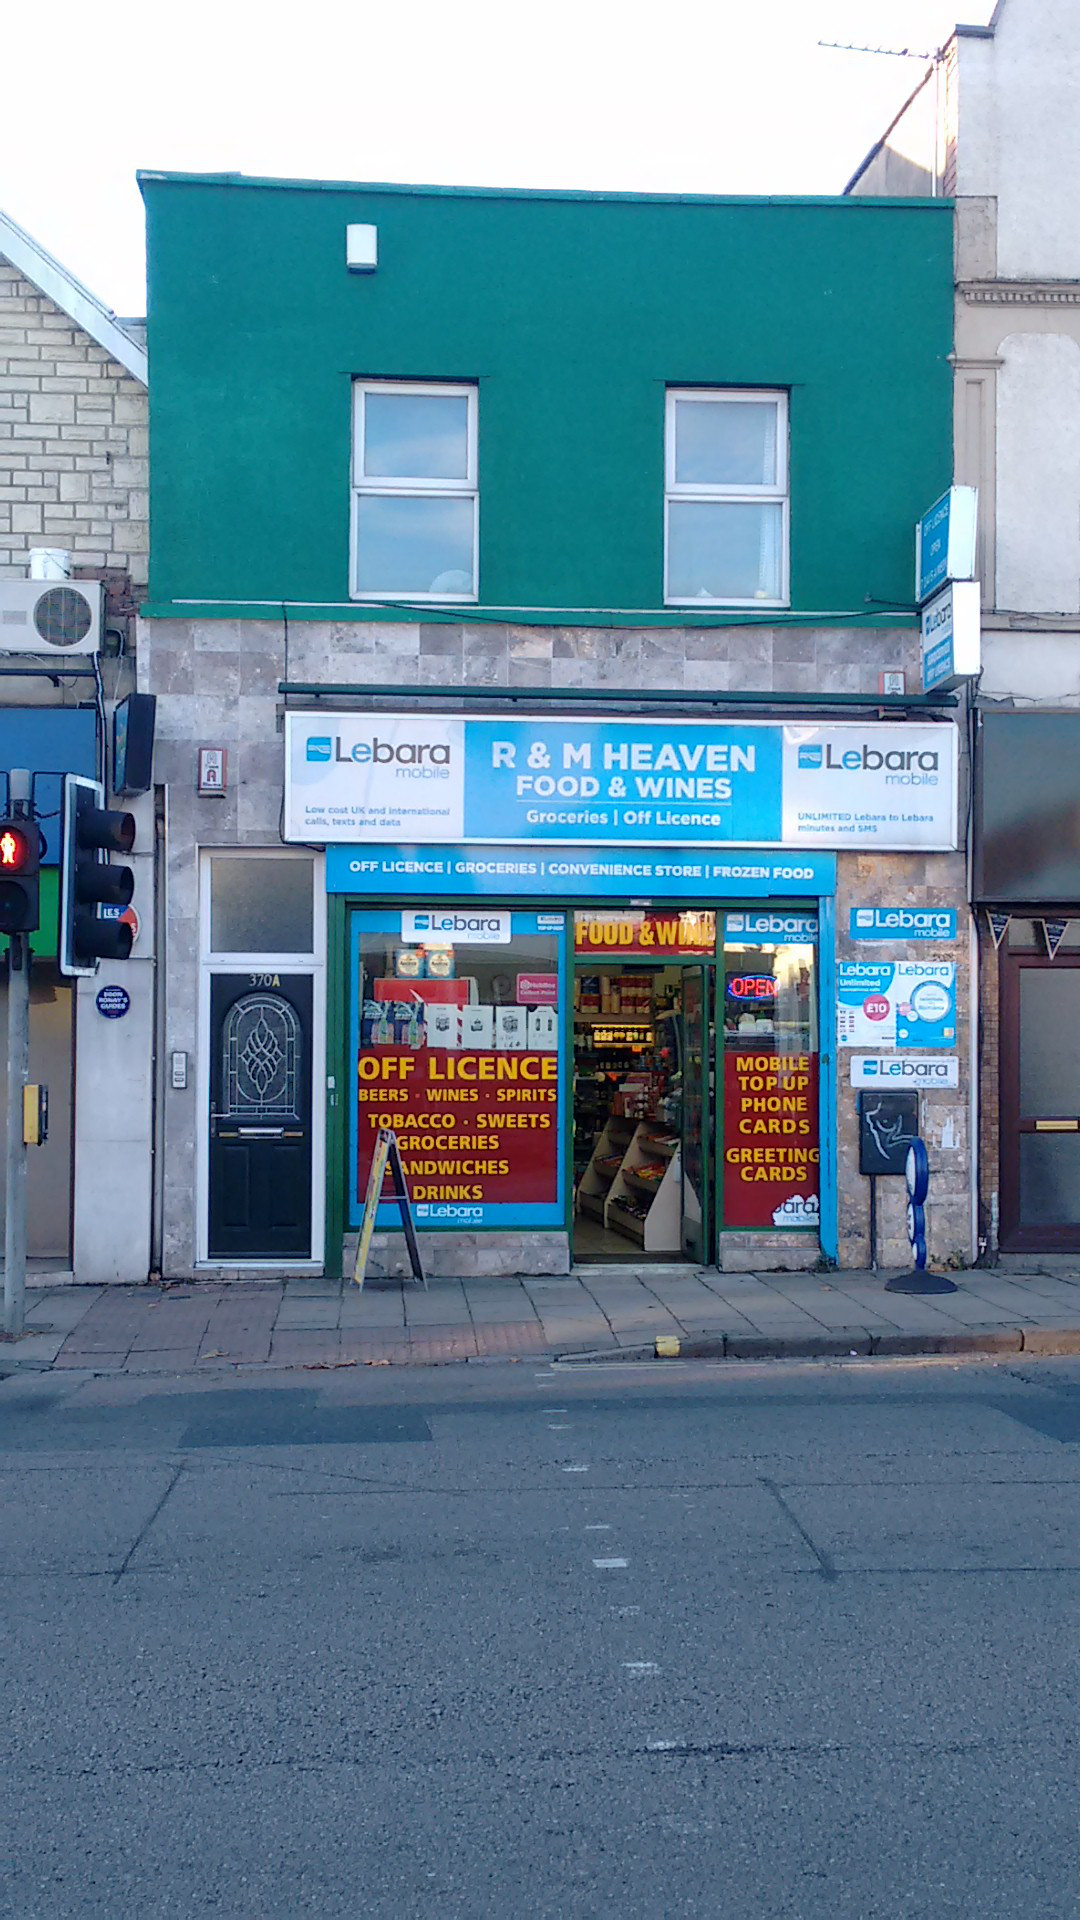 370, Gloucester Road dated 2017-11 from Full Survey 2017